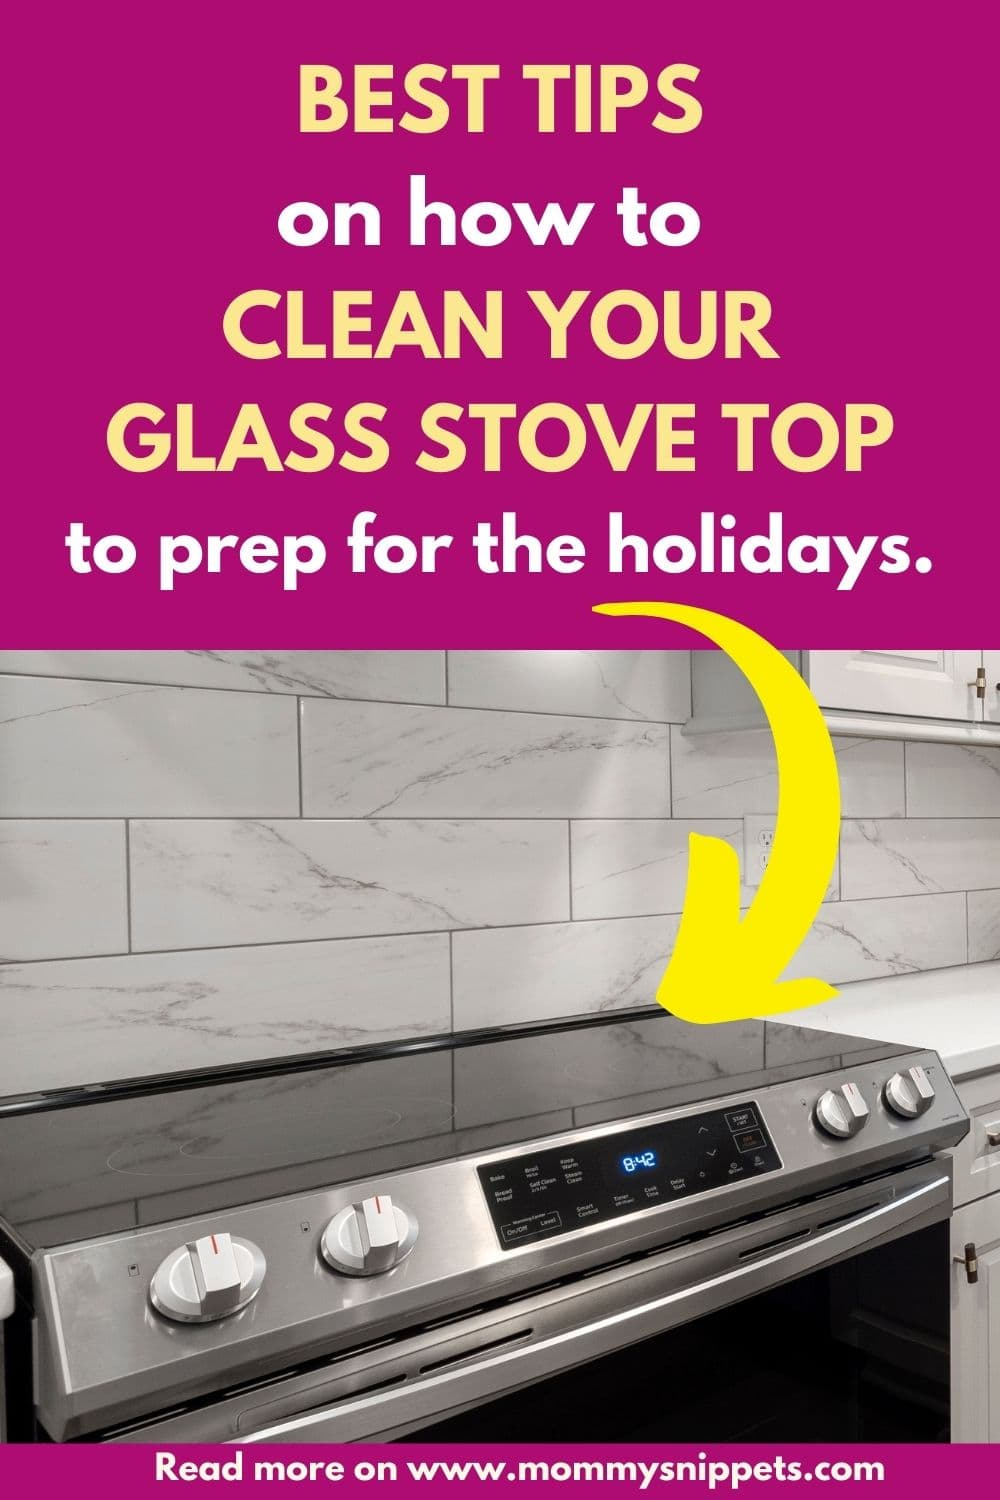 Best Tips on How to Clean Your Glass Stove Top to Prep for the Holidays